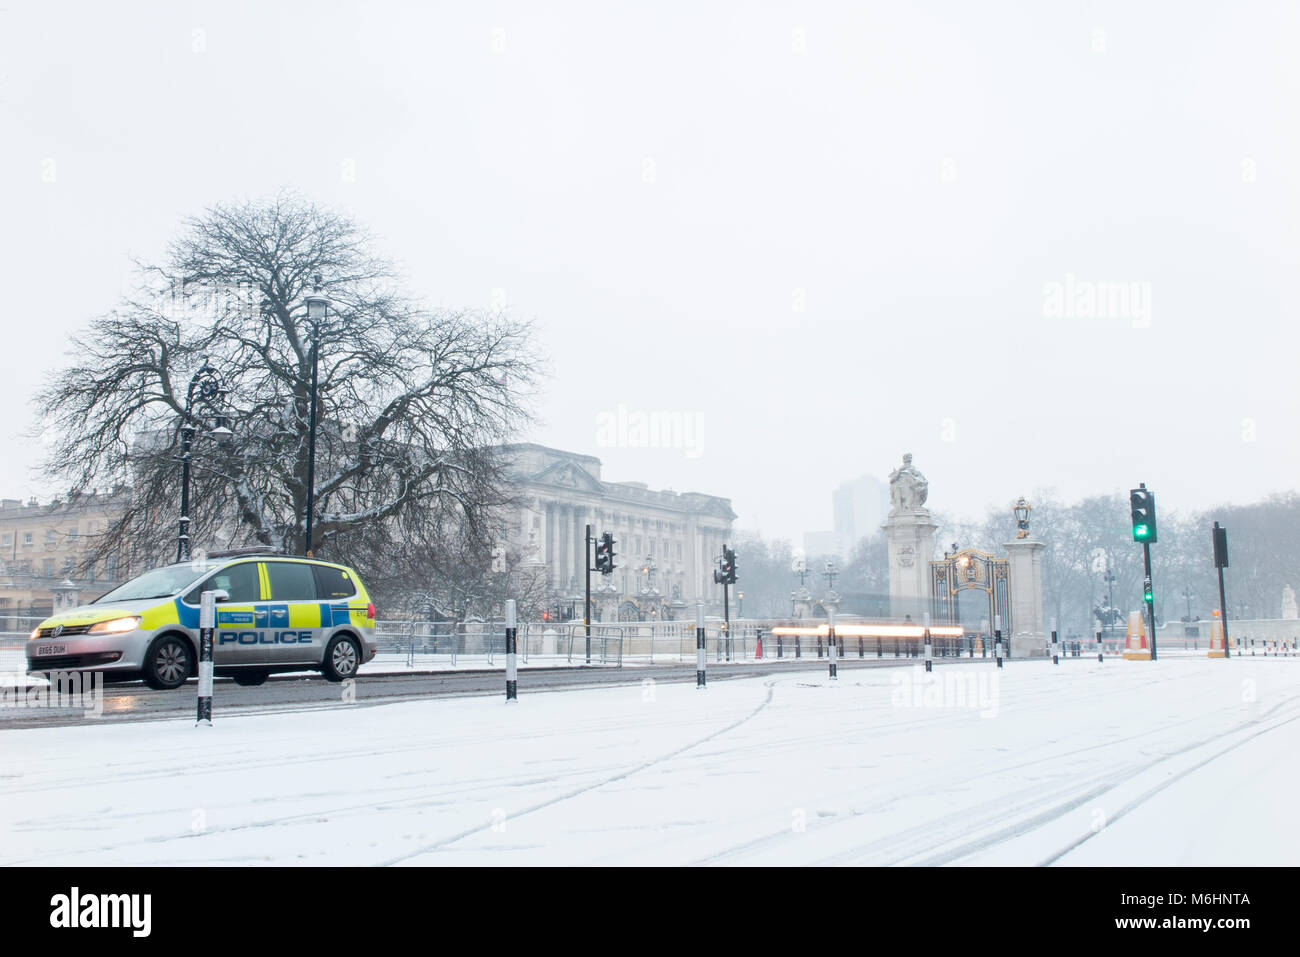 A police car outside Buckingham Palace in the snow - Stock Image